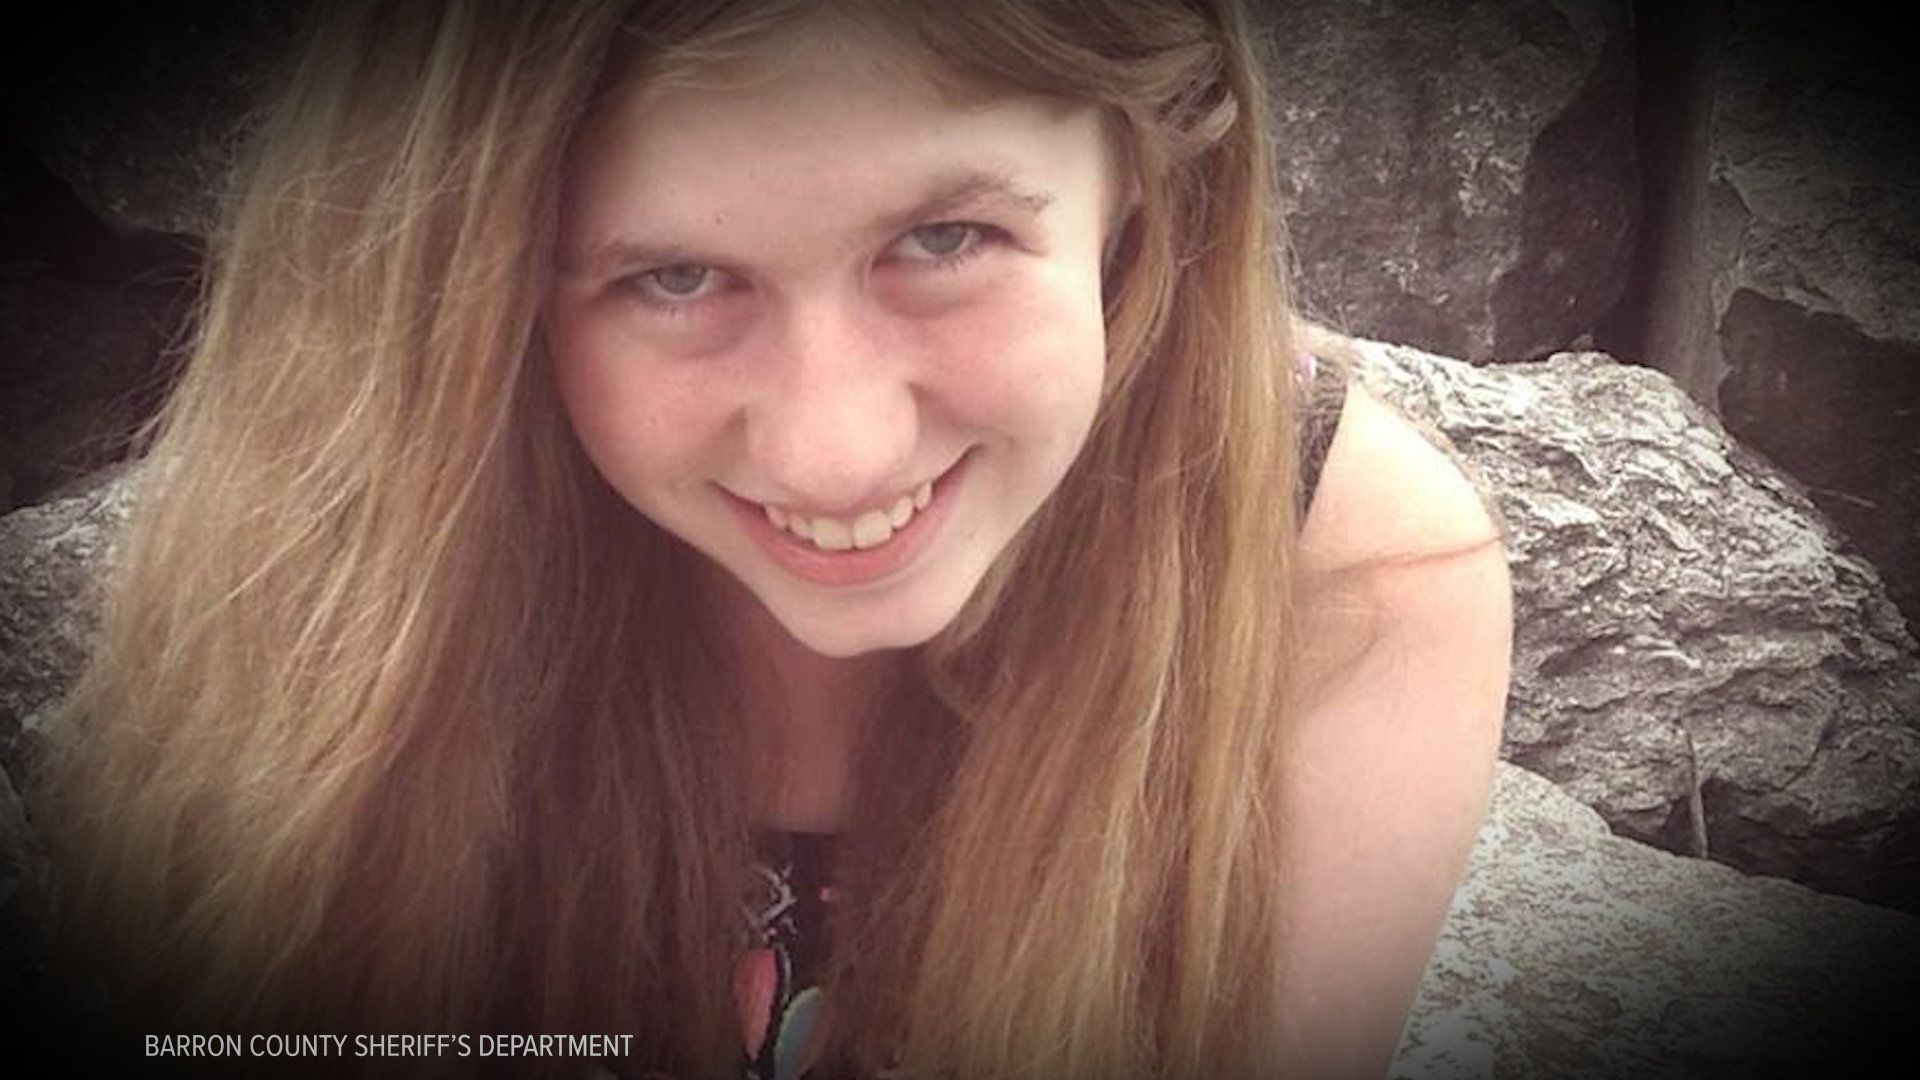 Missing 13-Year-Old Girl, Jayme Closs, Found Alive